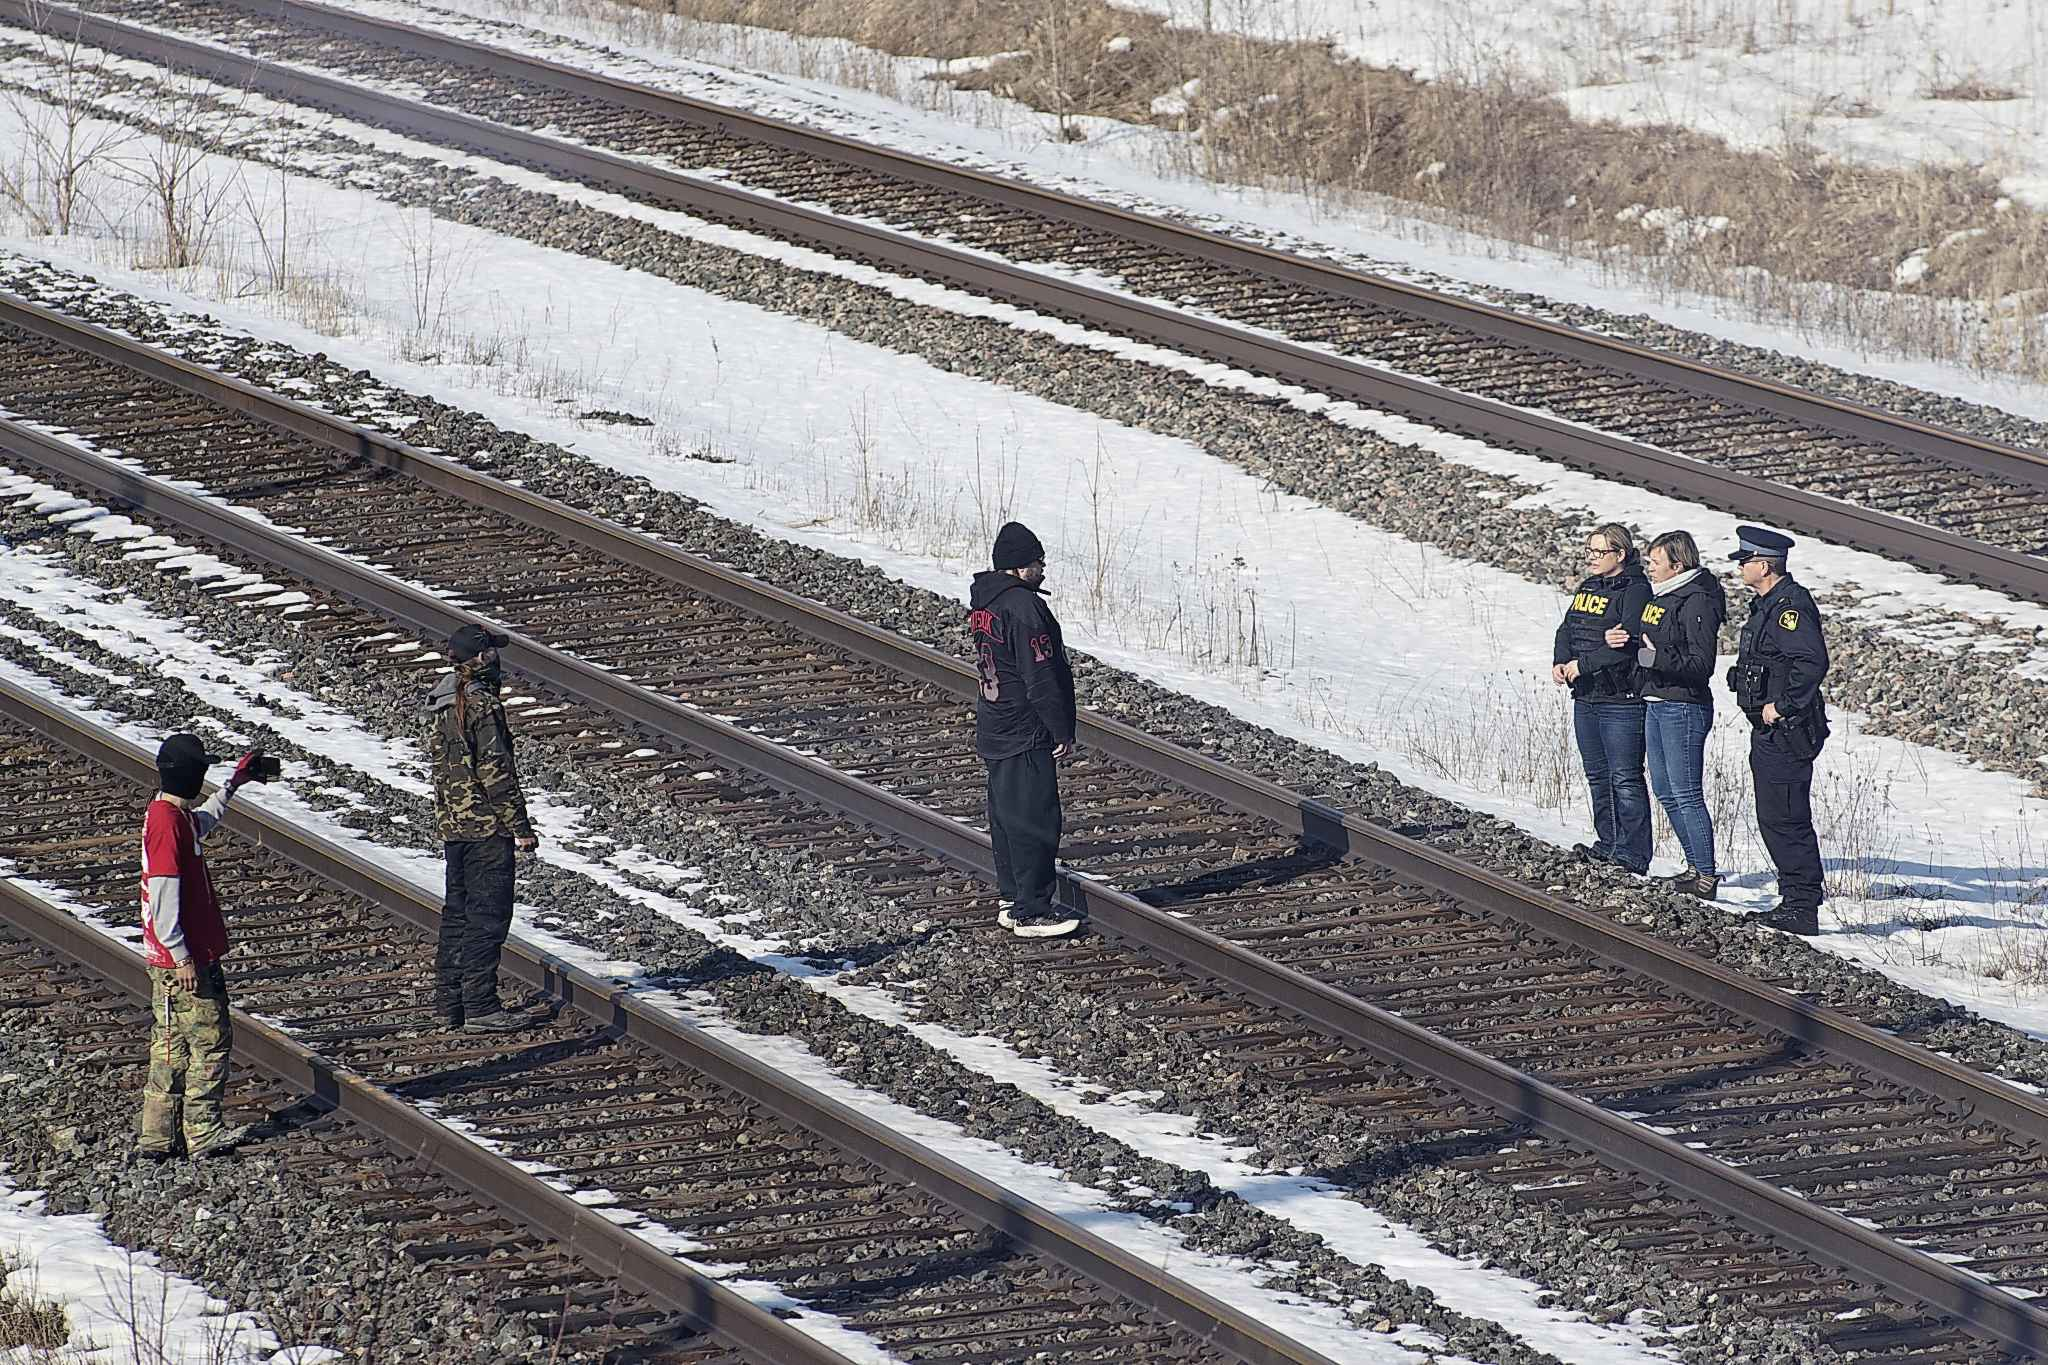 Ontario Provincial Police liaison officers speak with protesters on the closed train tracks at a second rail blockade in Tyendinaga Mohawk Territory, near Belleville, Ont., on Monday. THE CANADIAN PRESS/Lars Hagberg